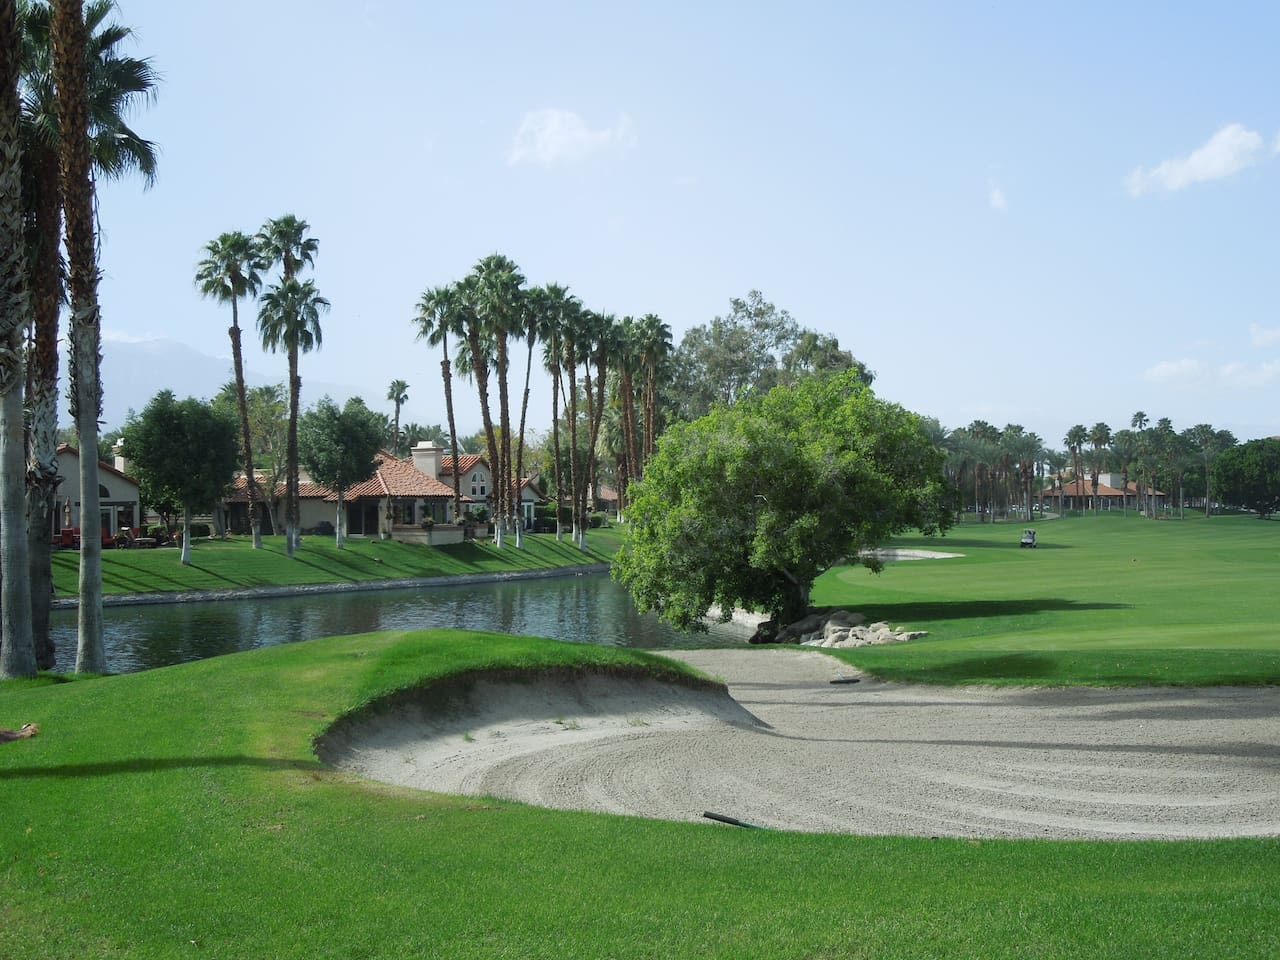 View of the golf course from the main entrance.